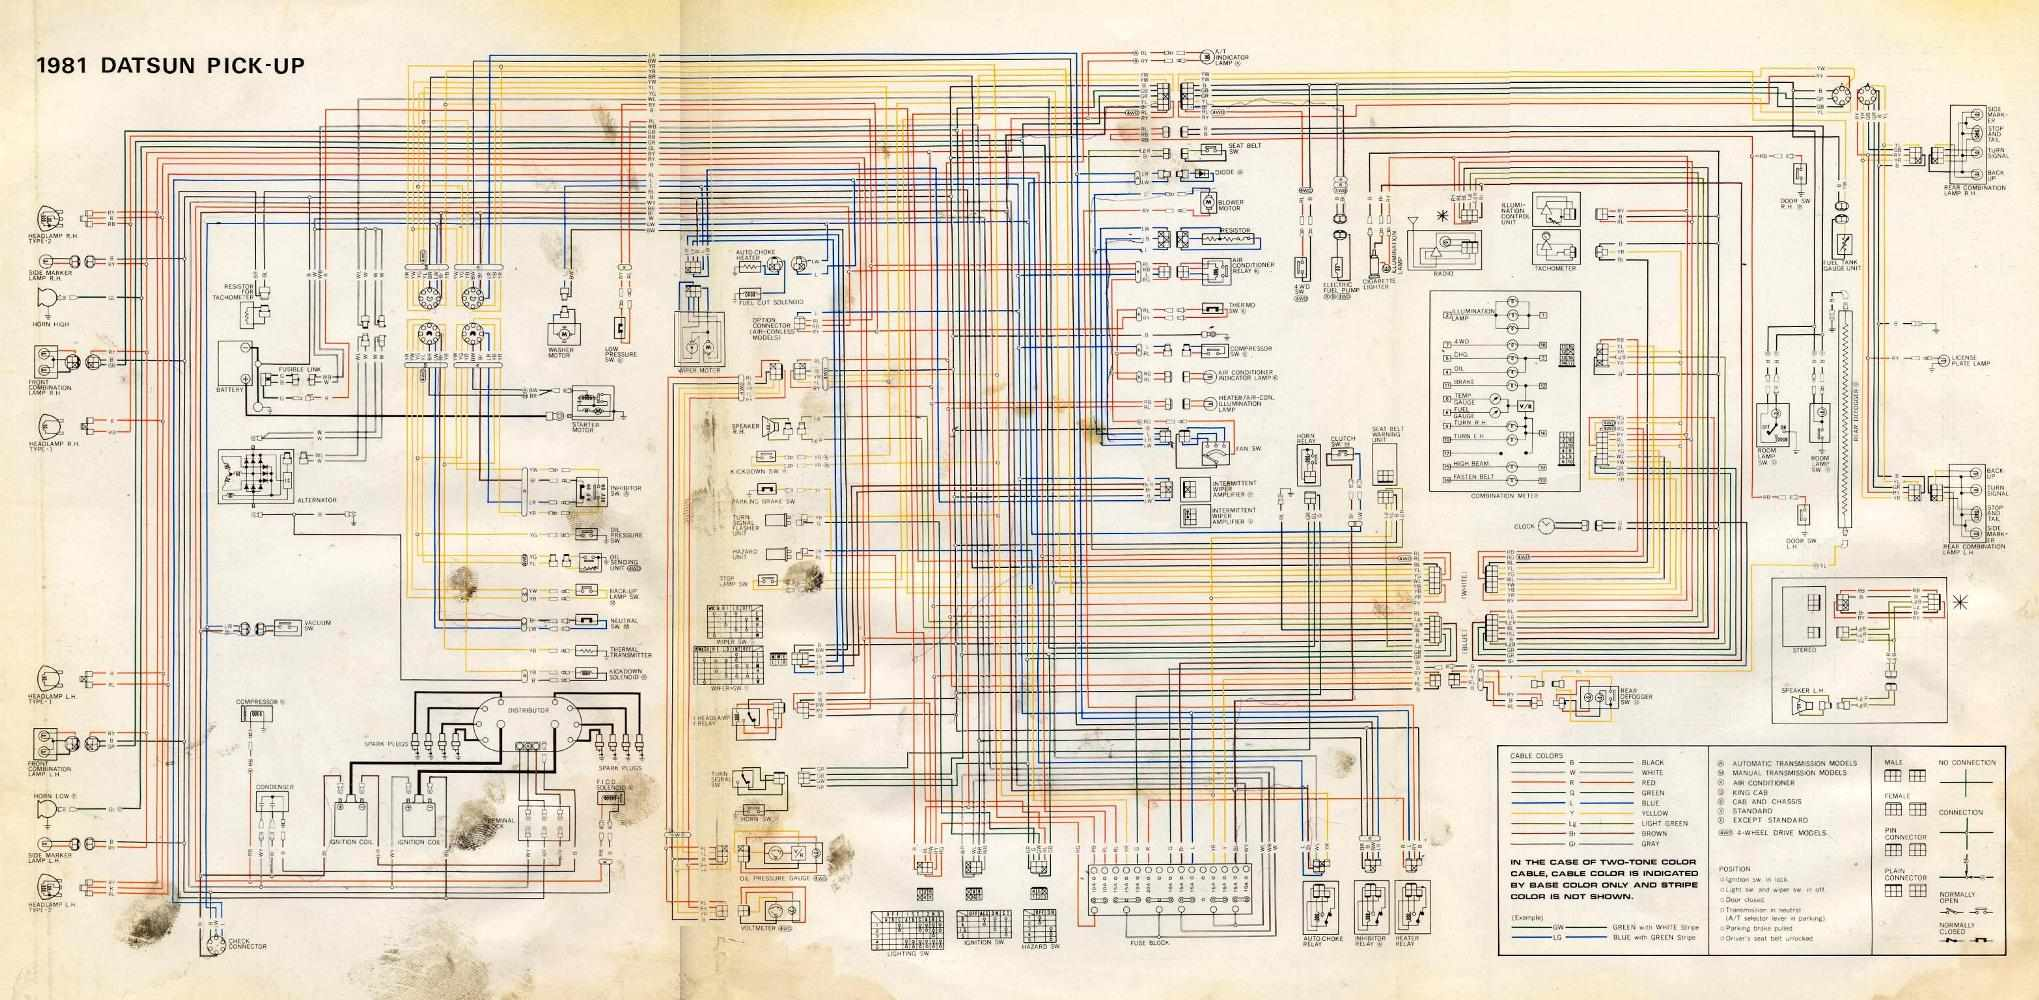 Nova Ignition Switch Wiring Diagram Also Datsun 521 1973 Chevy Fuse Box 1200 Mini Diagrams U2022 Rh Autonomia Co